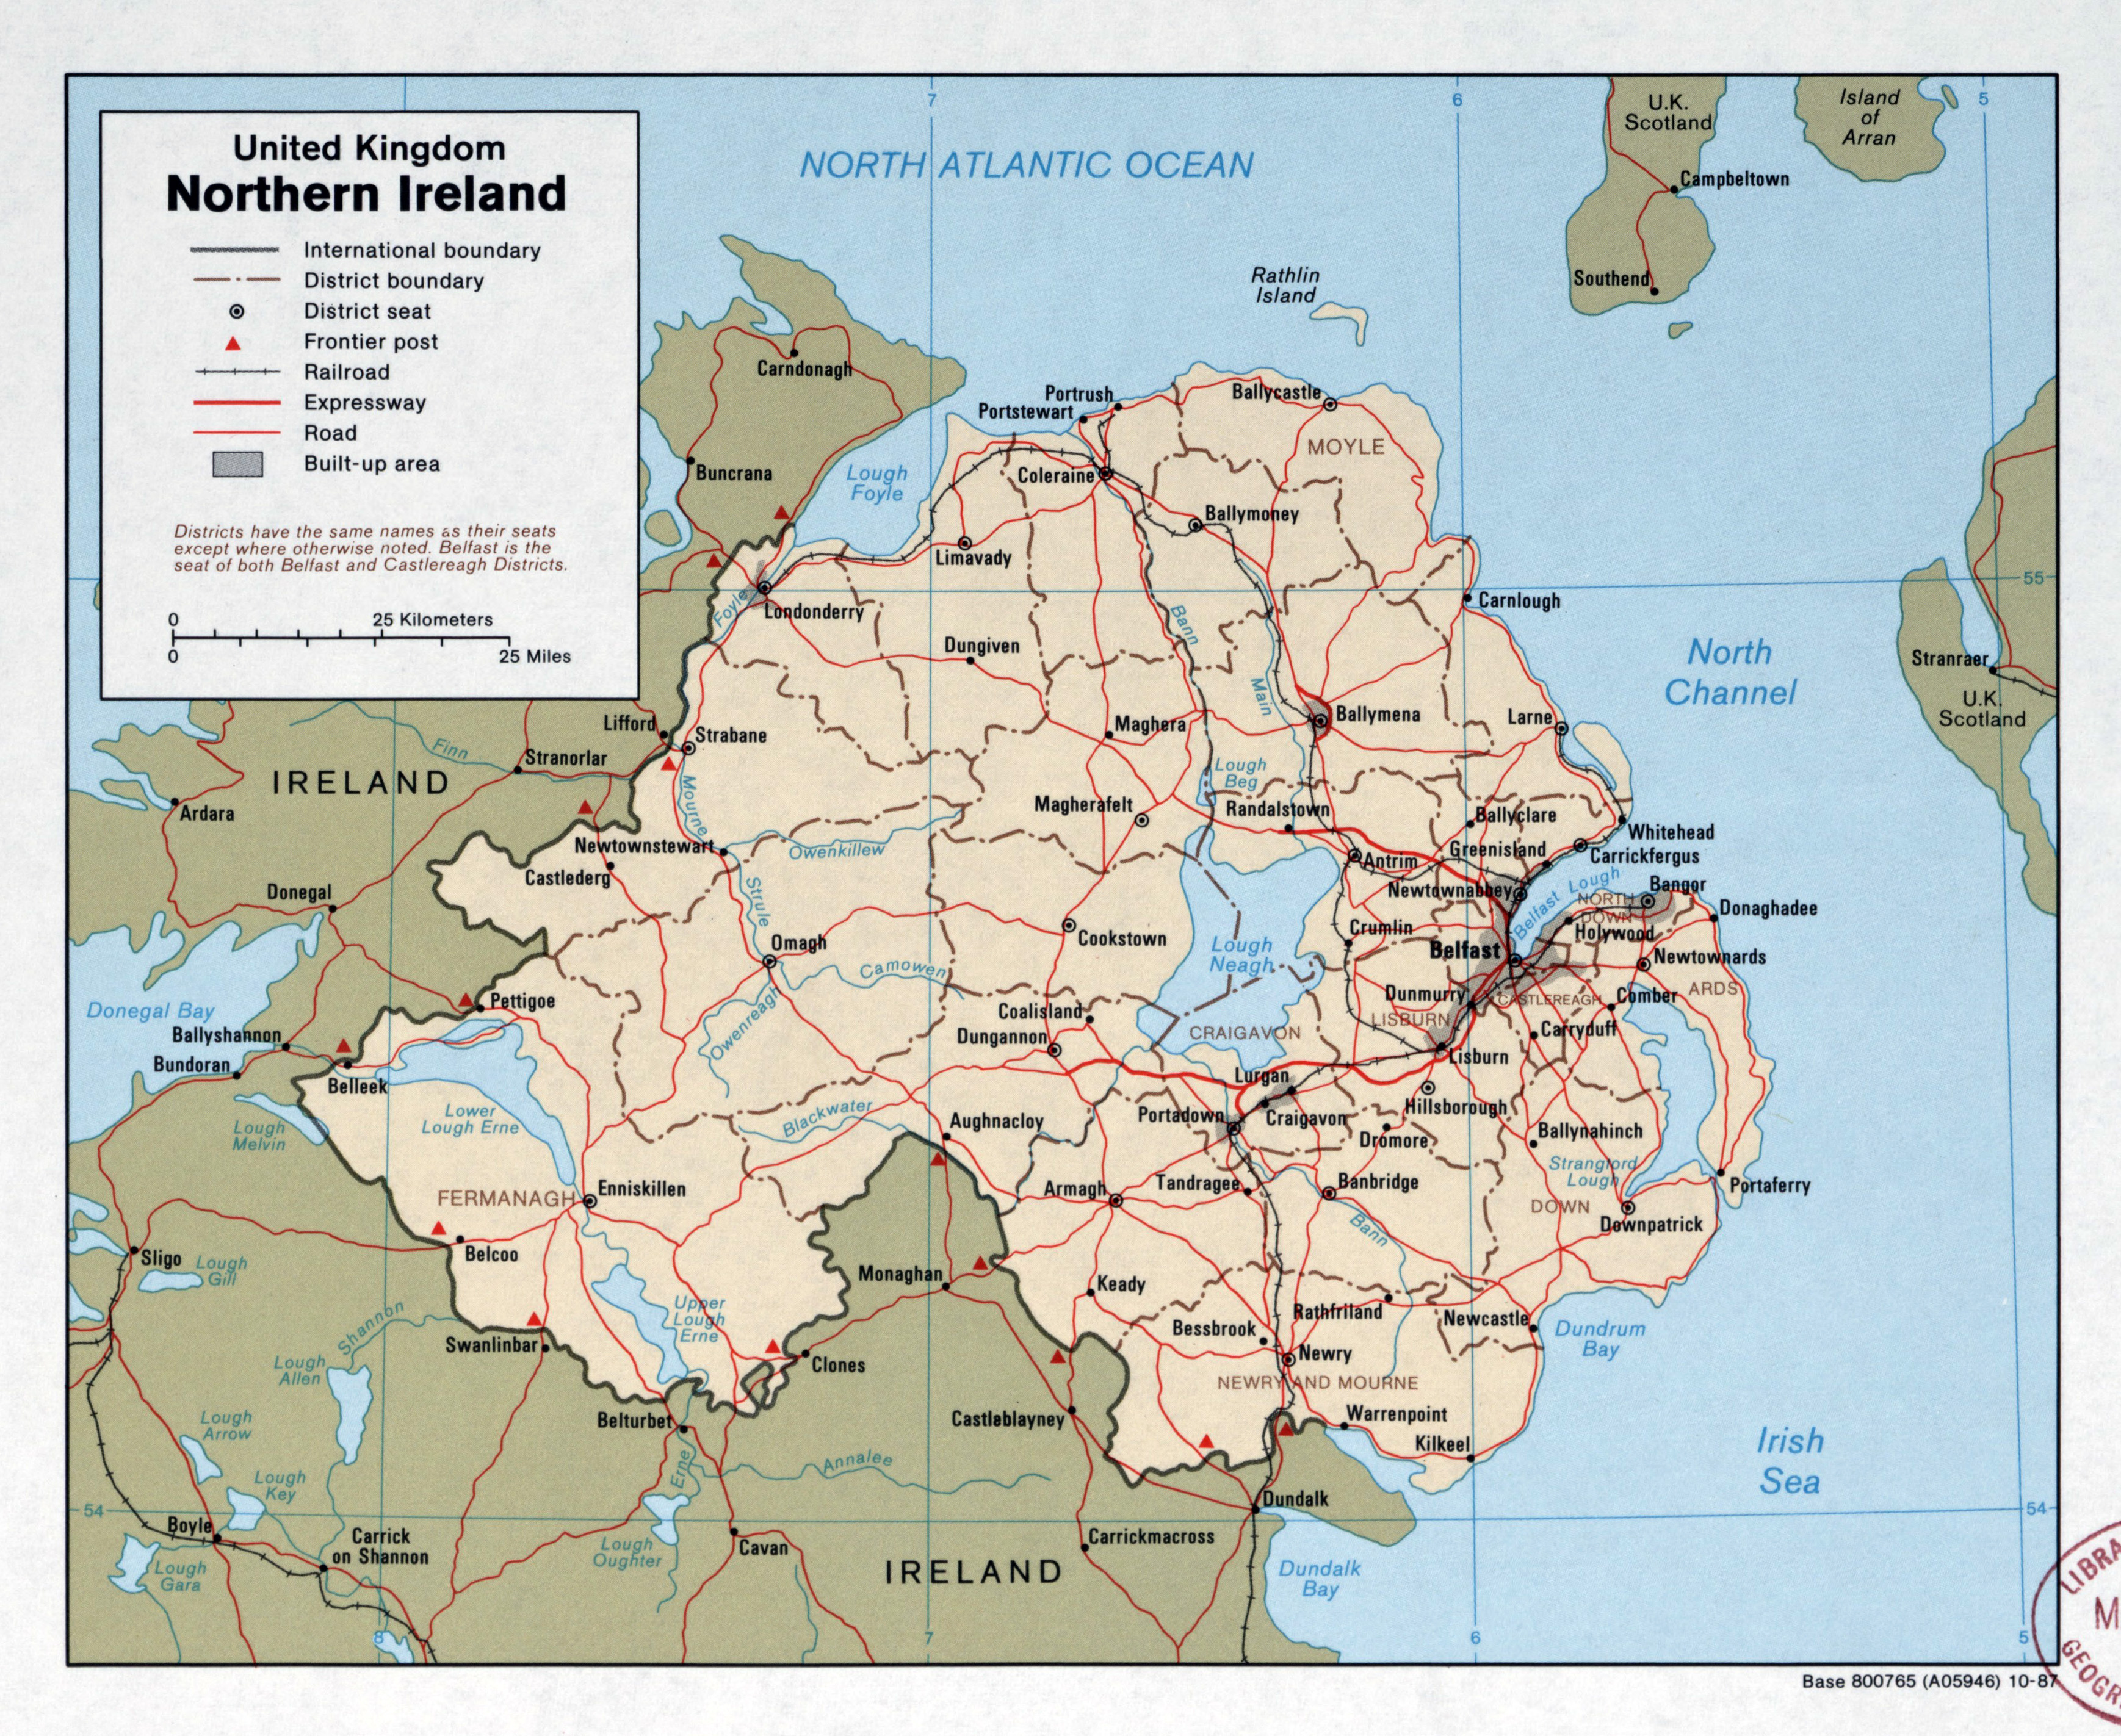 Map Of Northern Ireland Cities.Large Scale Political And Administrative Map Of Northern Ireland